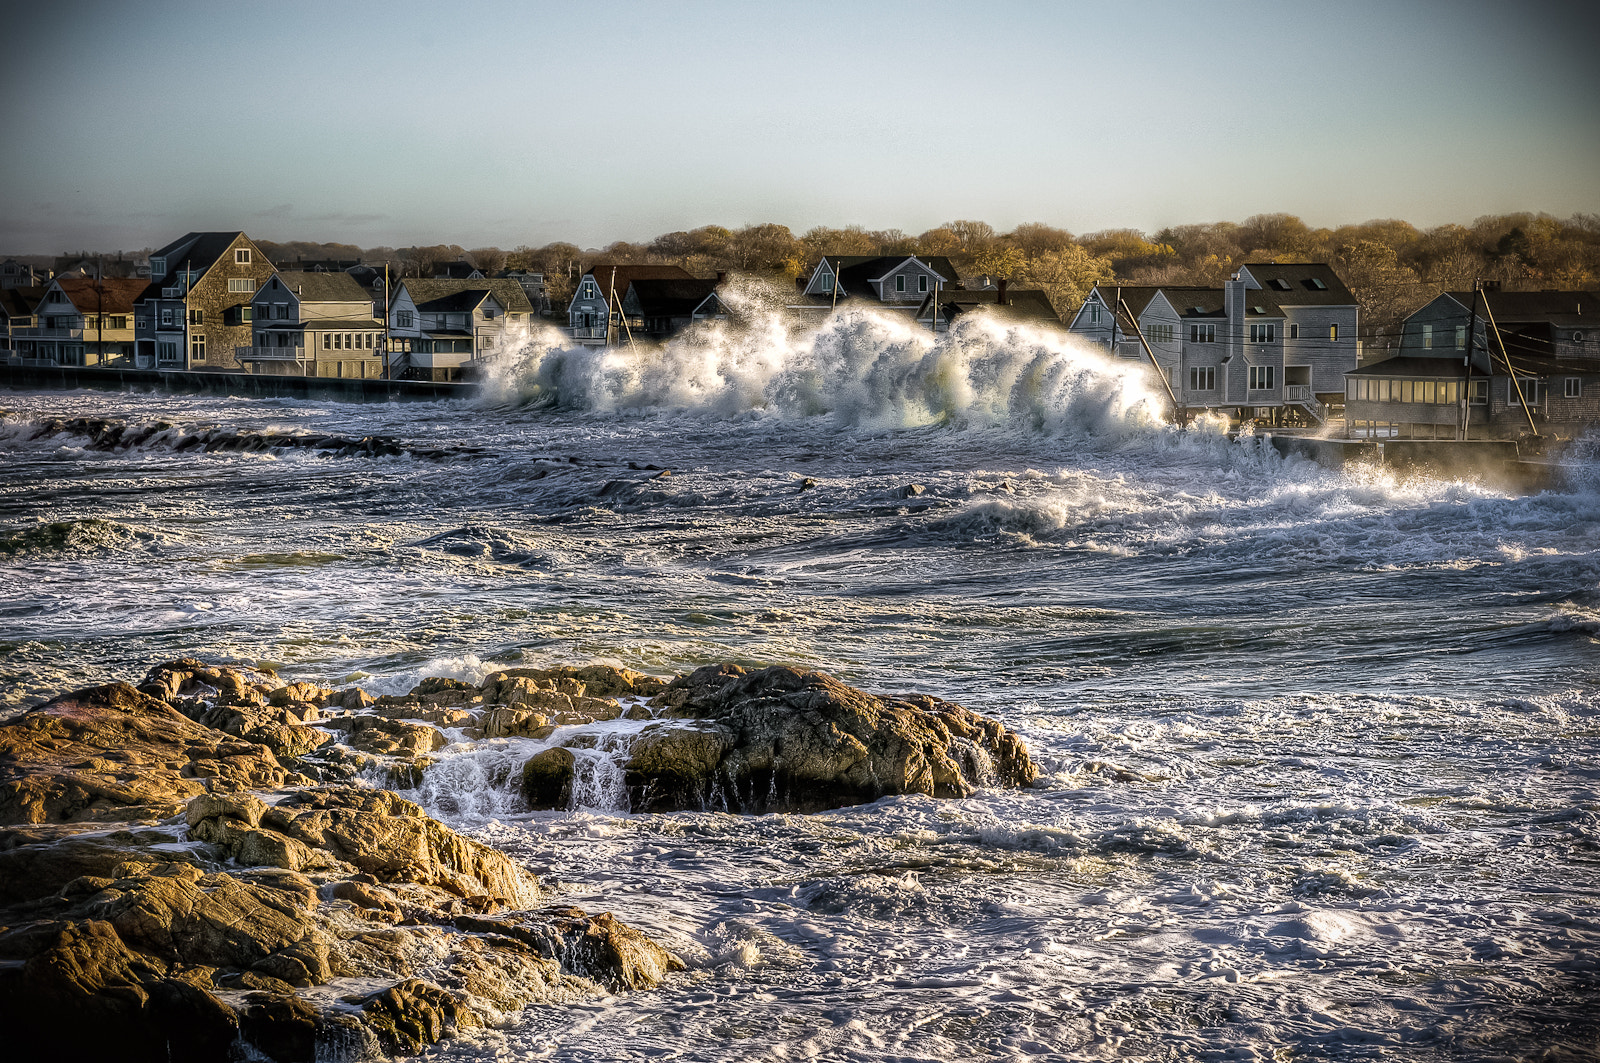 Photograph Scituate, MA by Steve Steinmetz on 500px